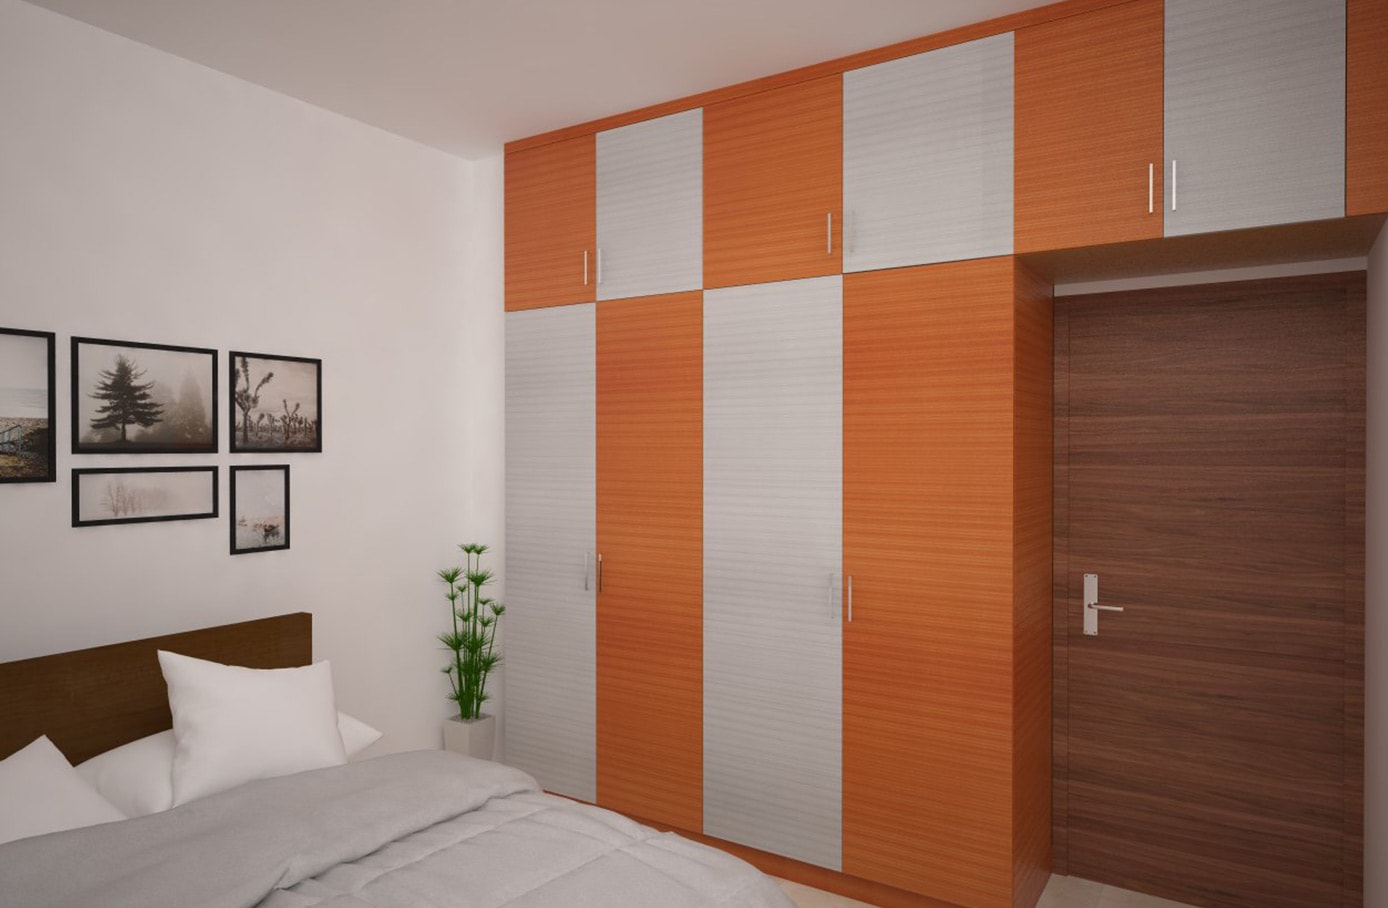 Modular Wardrobe Designs For Bedroom In Delhi Ncr Modspacein inside 12 Smart Ways How to Upgrade Modern Wardrobes Designs For Bedrooms